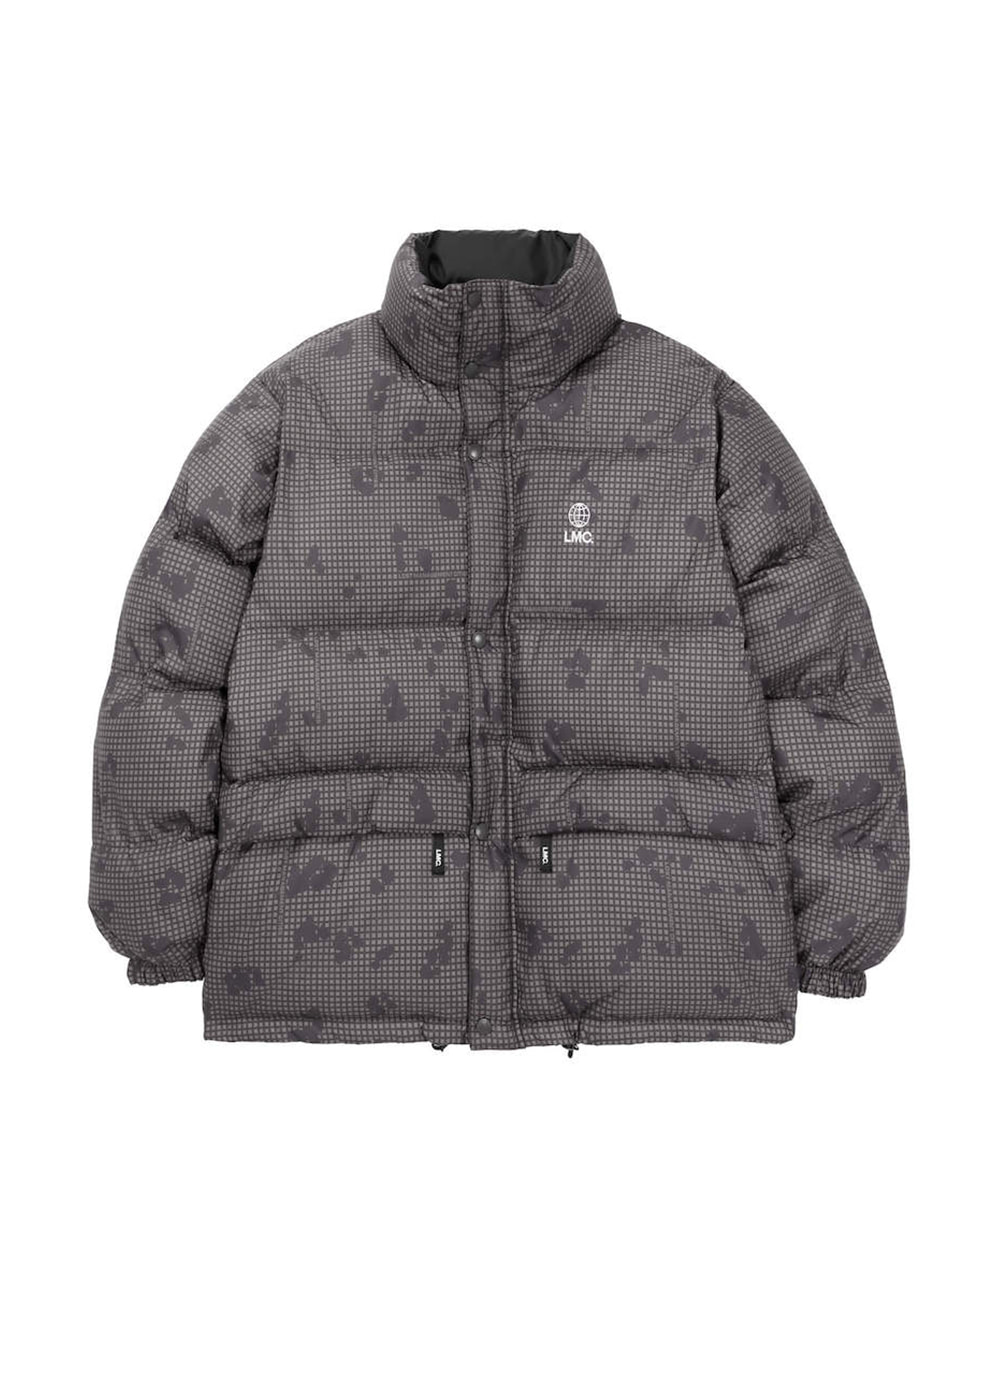 LMC REVERSIBLE DOWN PARKA night camo